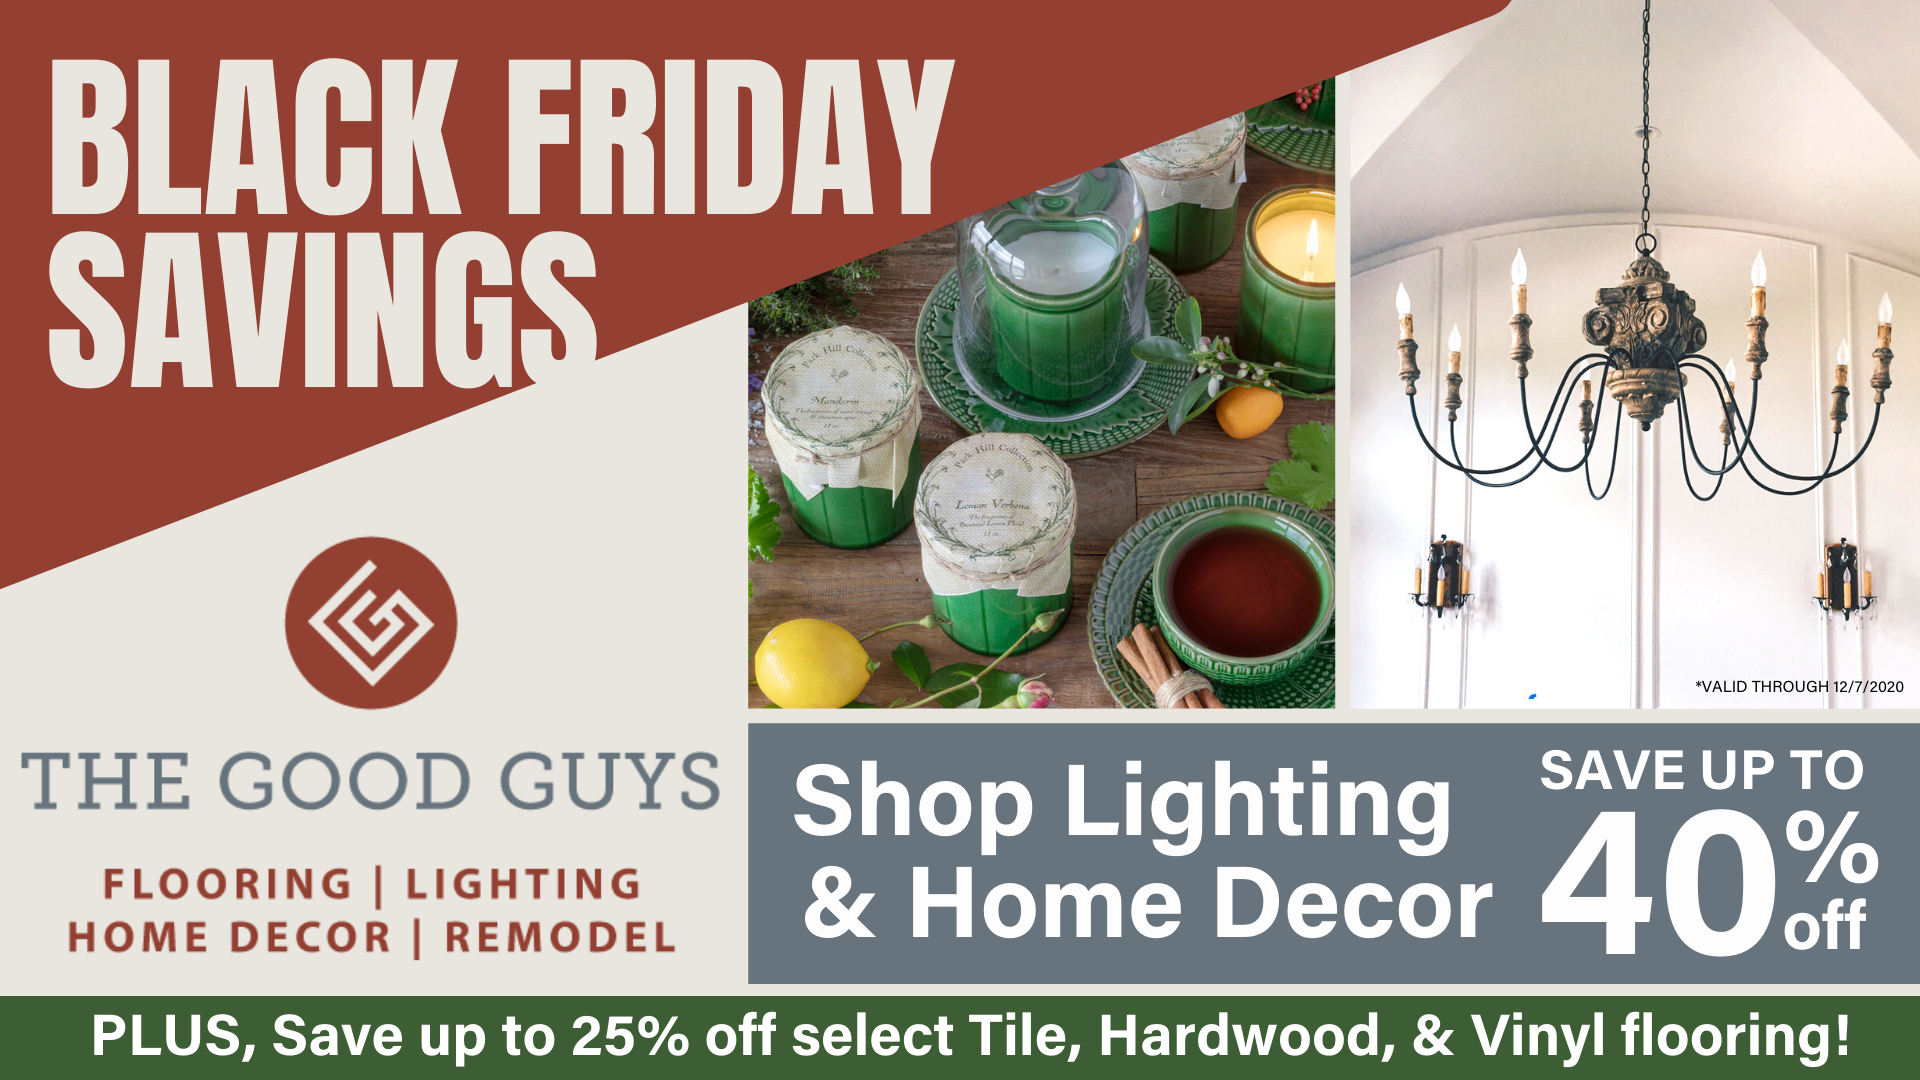 Black Friday Savings at The Good Guys' Design Center